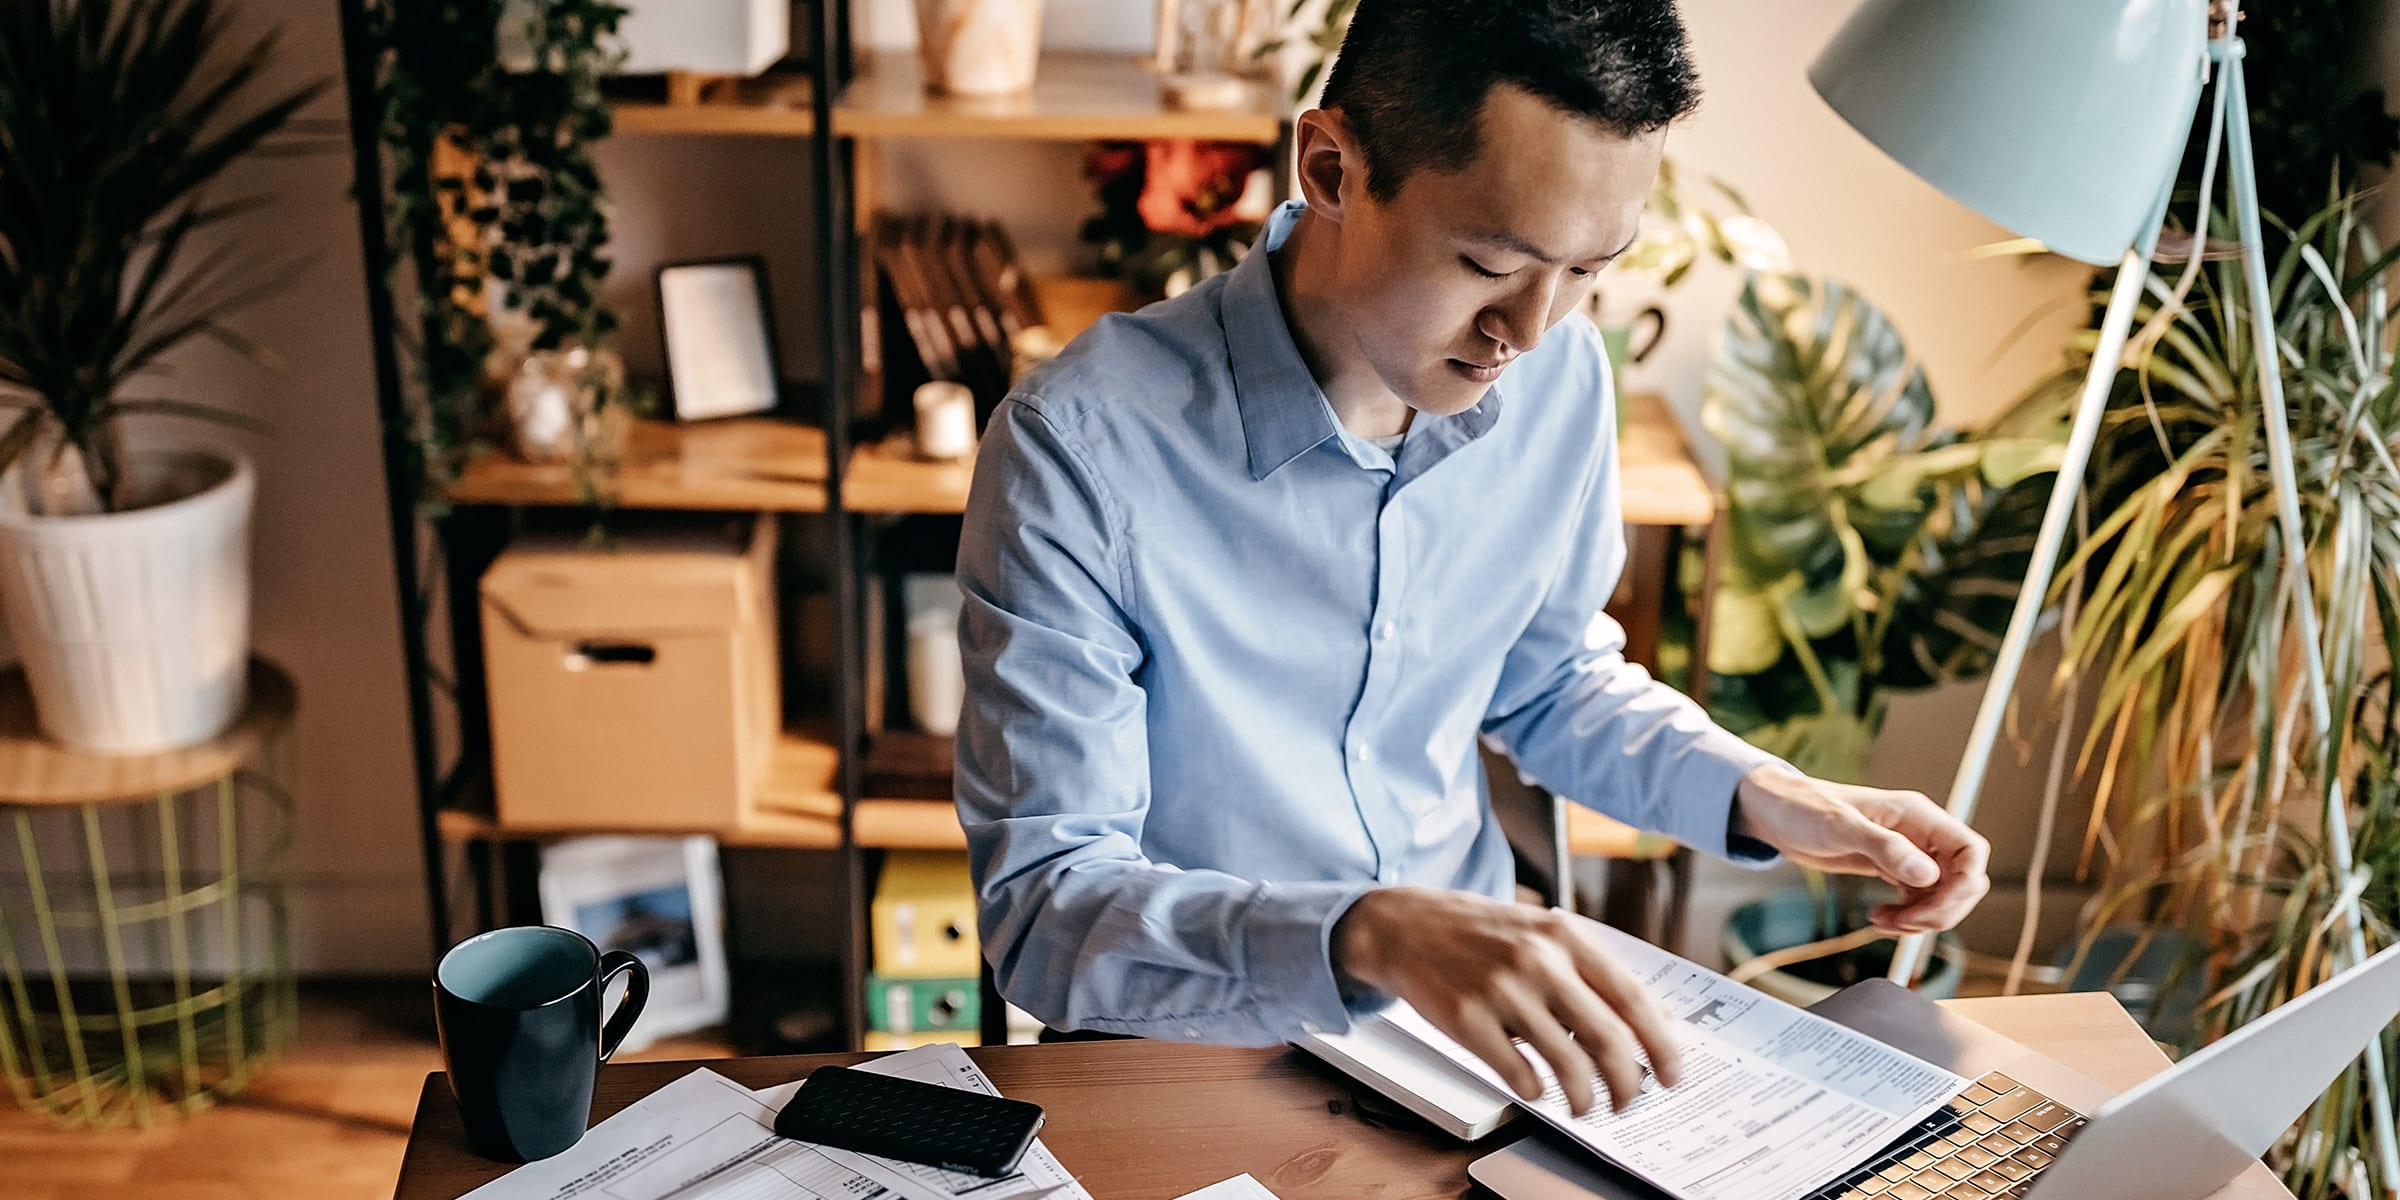 Man researching how to live more sustainably